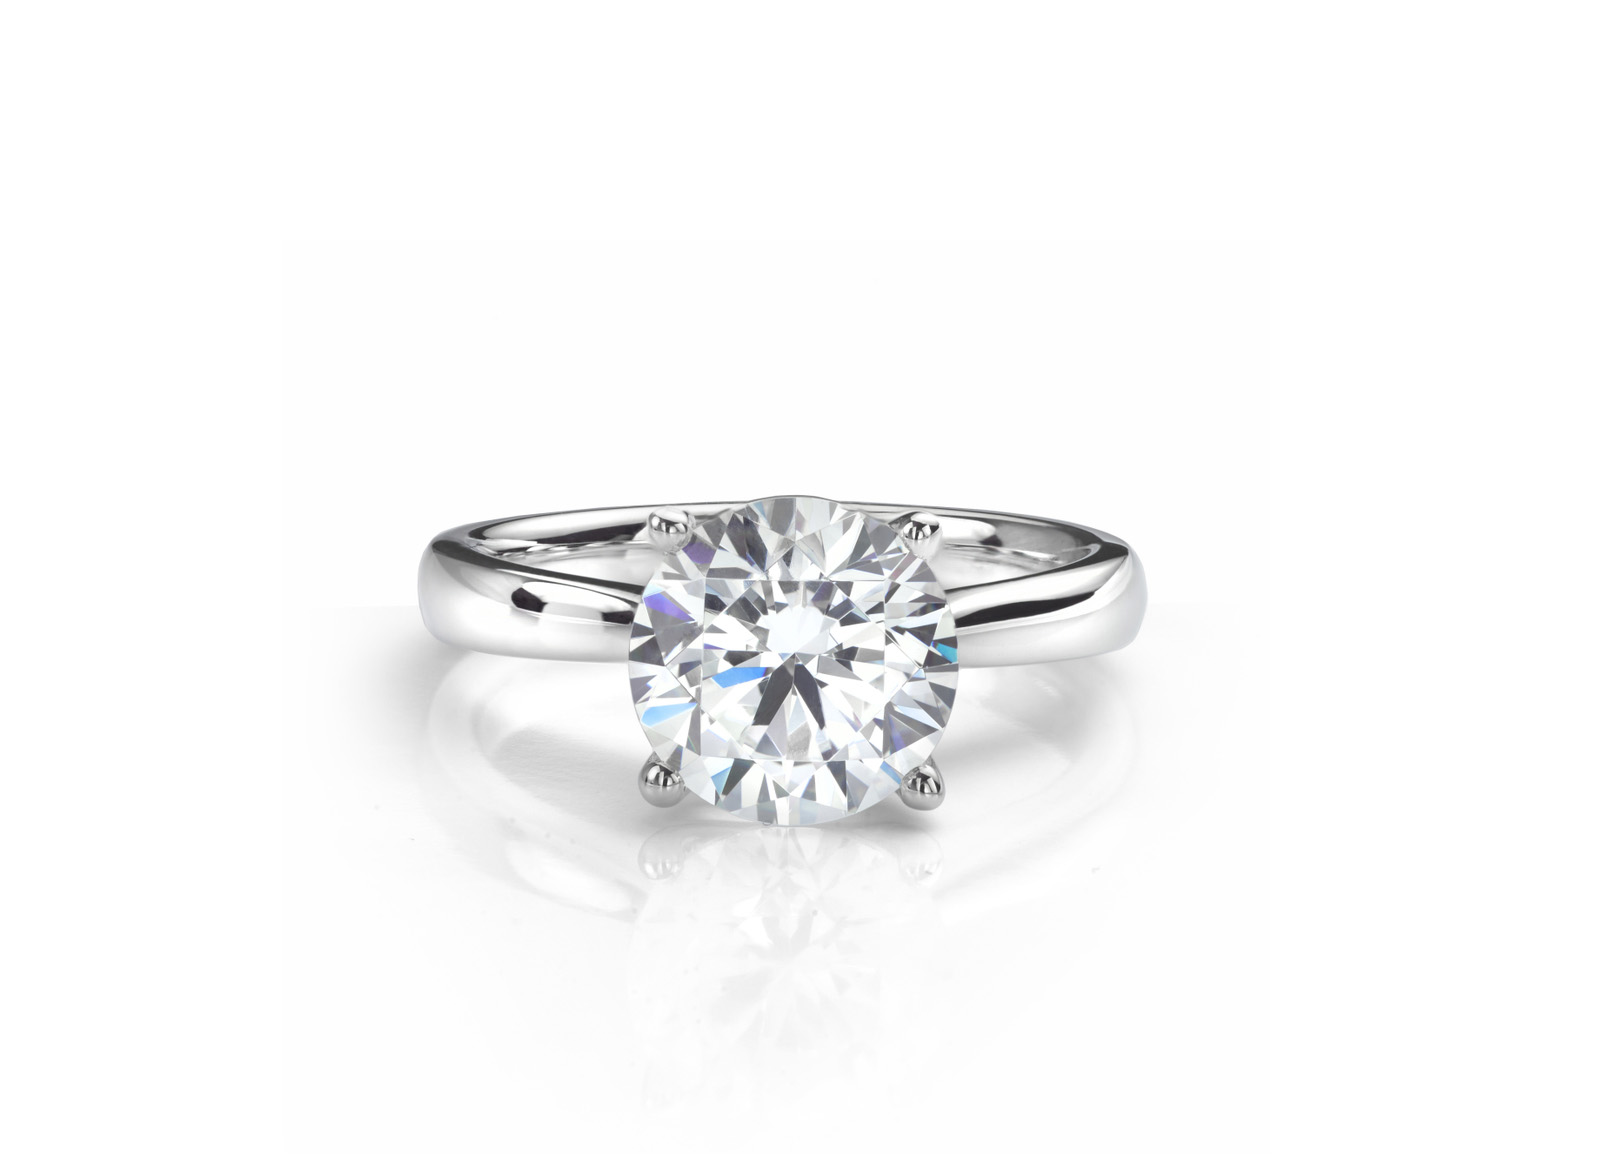 Engagement Shop engagement rings & bridal jewellery. Spicer Cole Fine Jewellers Fredericton, NB